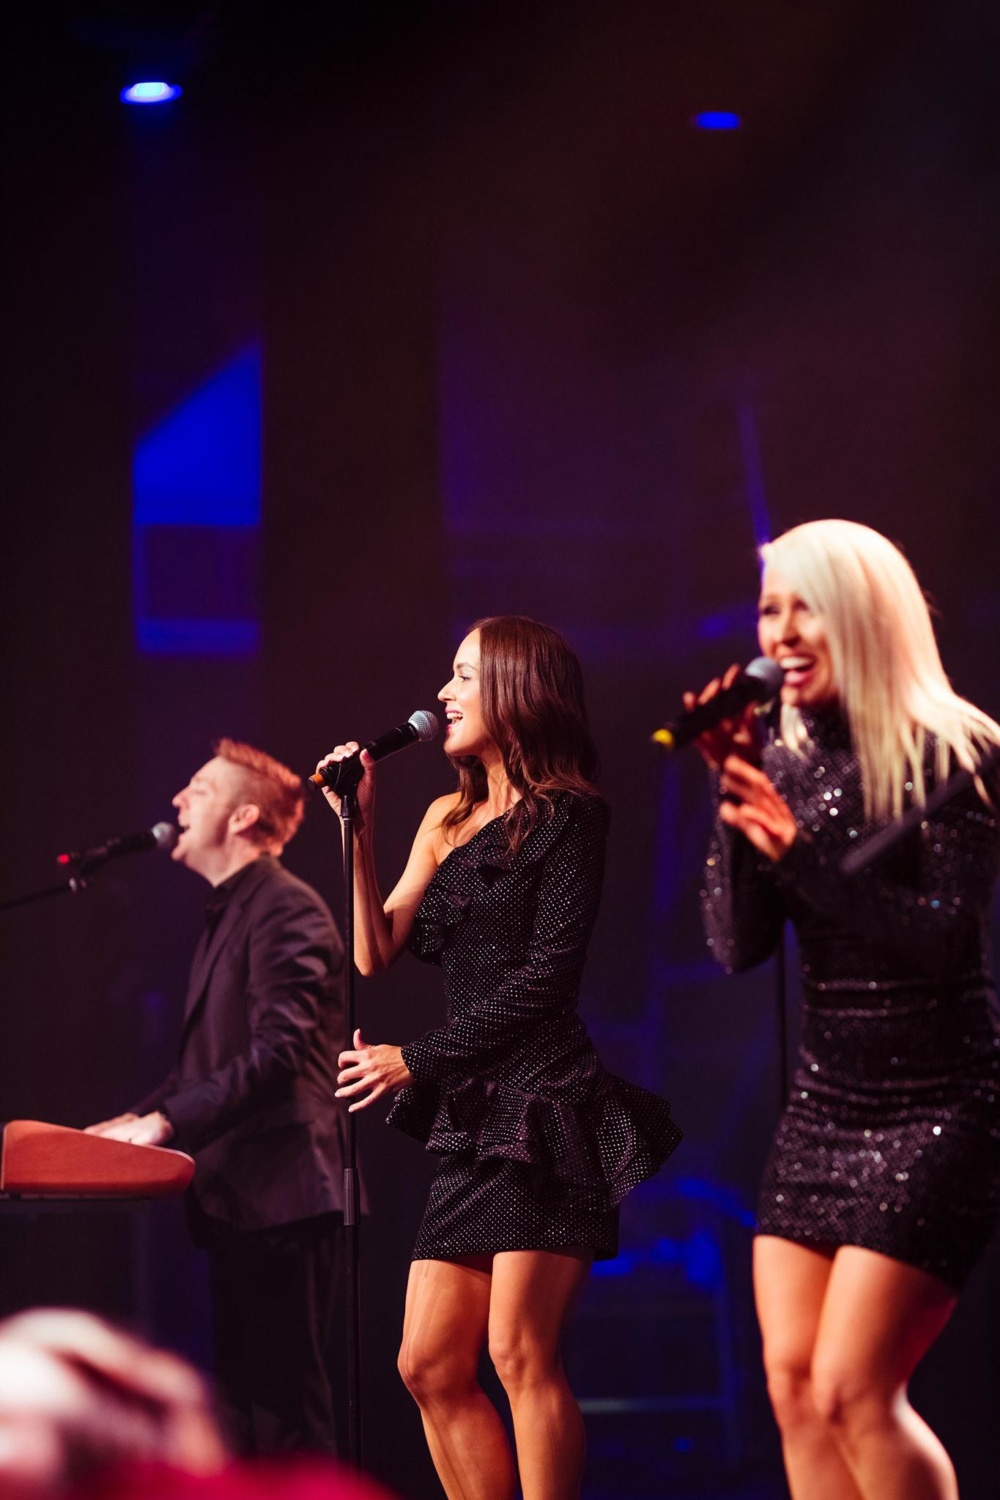 Supertrouper - Australia's #1 ABBA Show Presented By Superband - Live, Acoustic, Intimate Dinner & Show